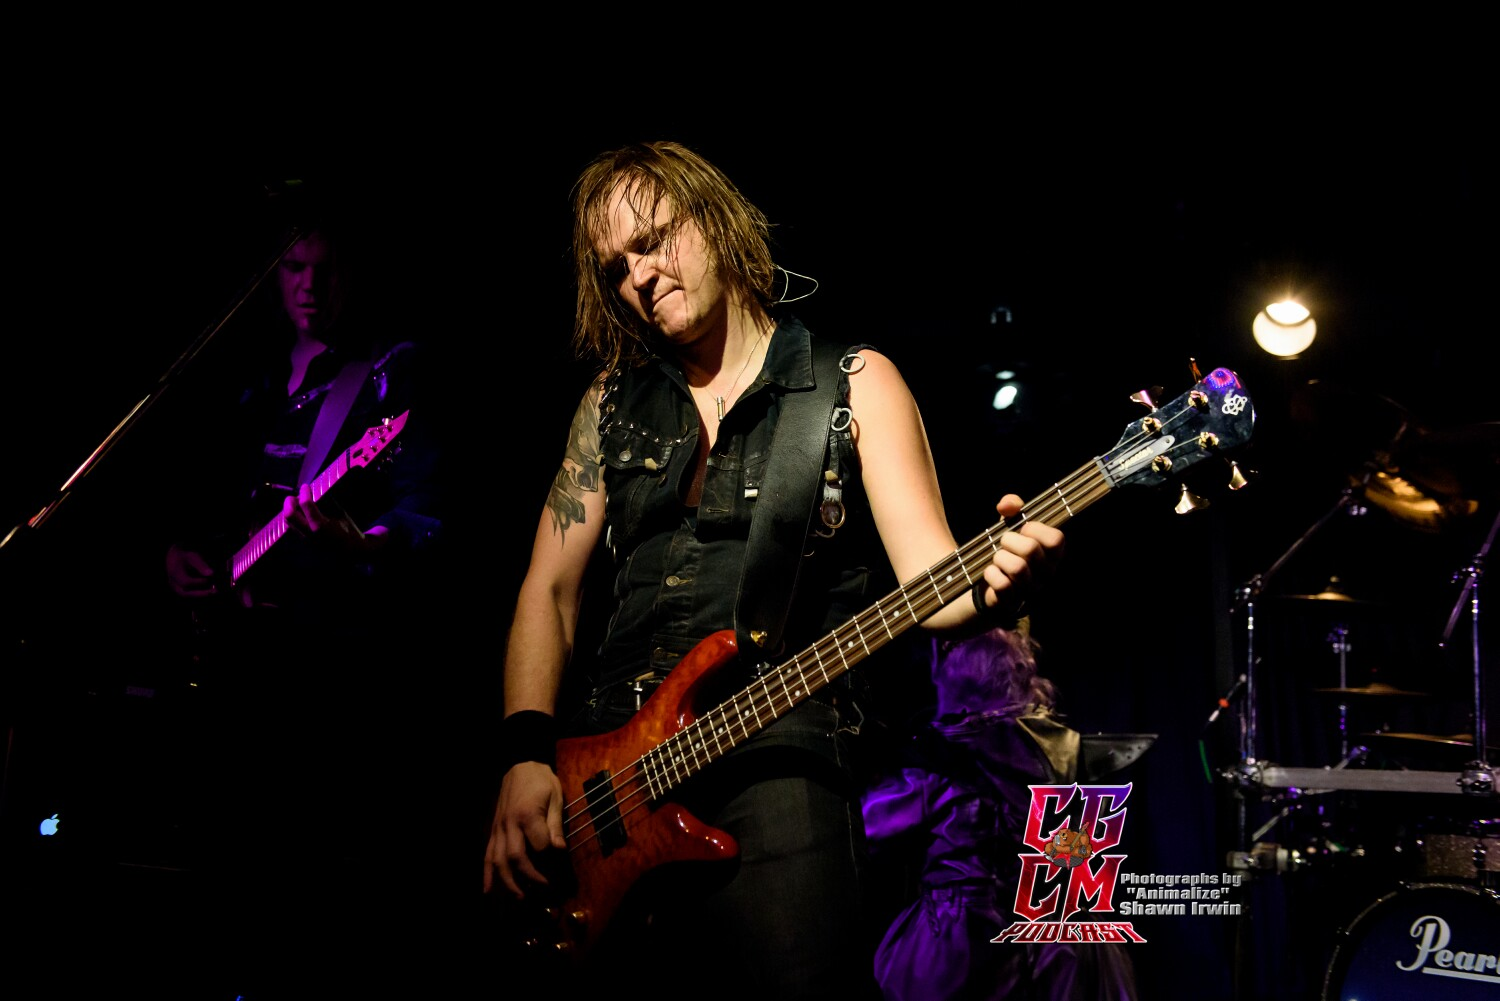 Battle Beast Photos CGCM LOGO Shawn Irwin (19 Of 34)